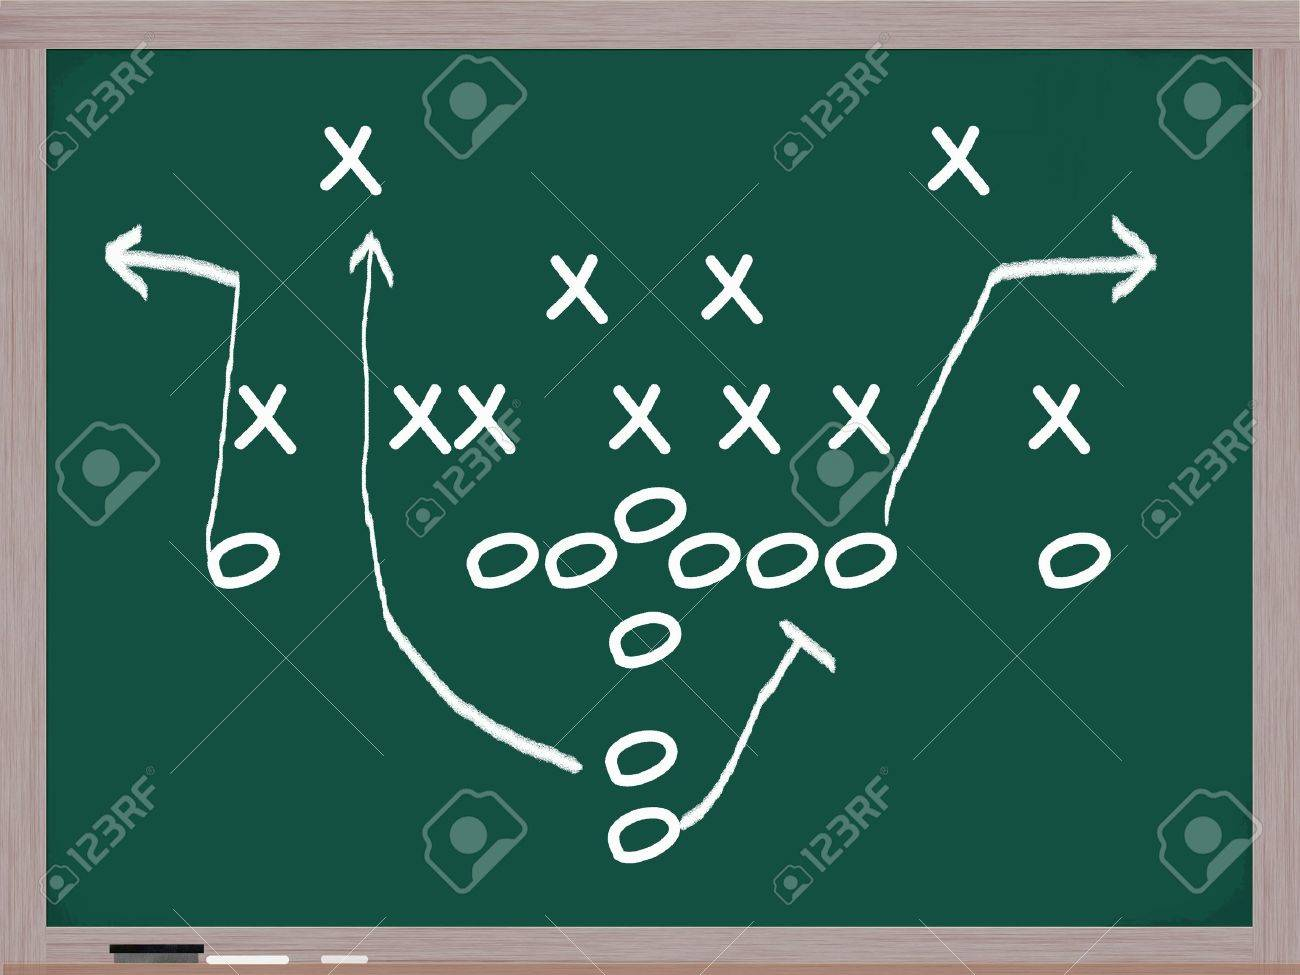 A football play diagram on a chalkboard in white chalk showing a football play diagram on a chalkboard in white chalk showing the formations and assignments pooptronica Images